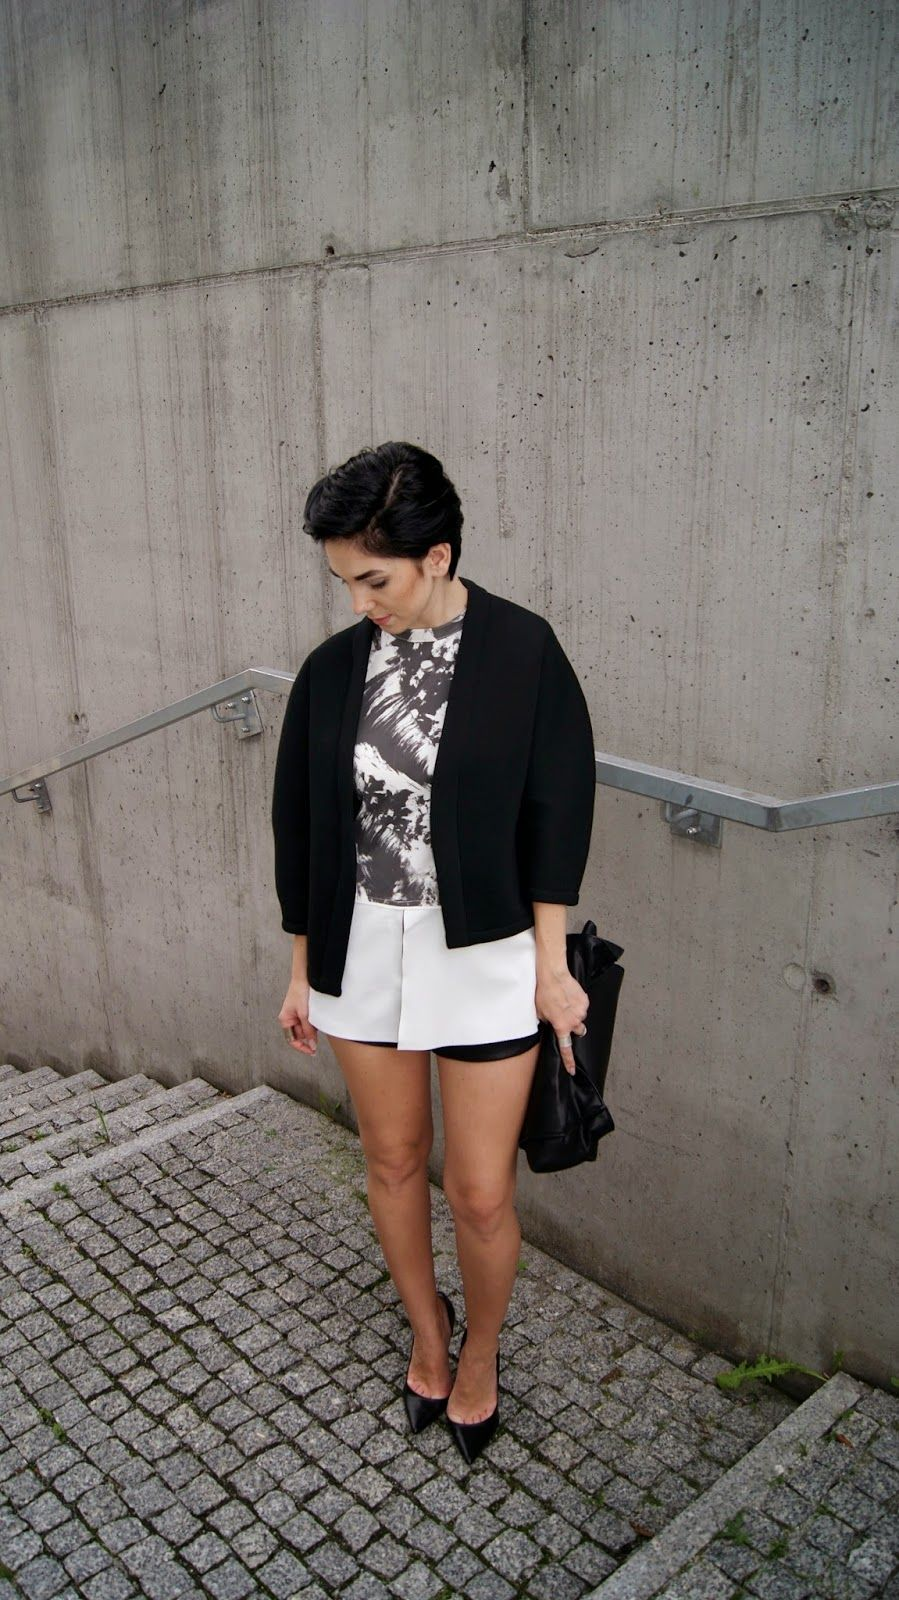 jacket: http://www.frontrowshop.com/product/coat-in-kimono-style-1?ceid=1698 blouse: http://www.choies.com/product/black-texture-print-blouse-with-white-peplum_p24207?cid=2759jesspai visit me to see more: http://mesmerize87.blogspot.com/2014/09/texture-print-blouse-with-peplum.html